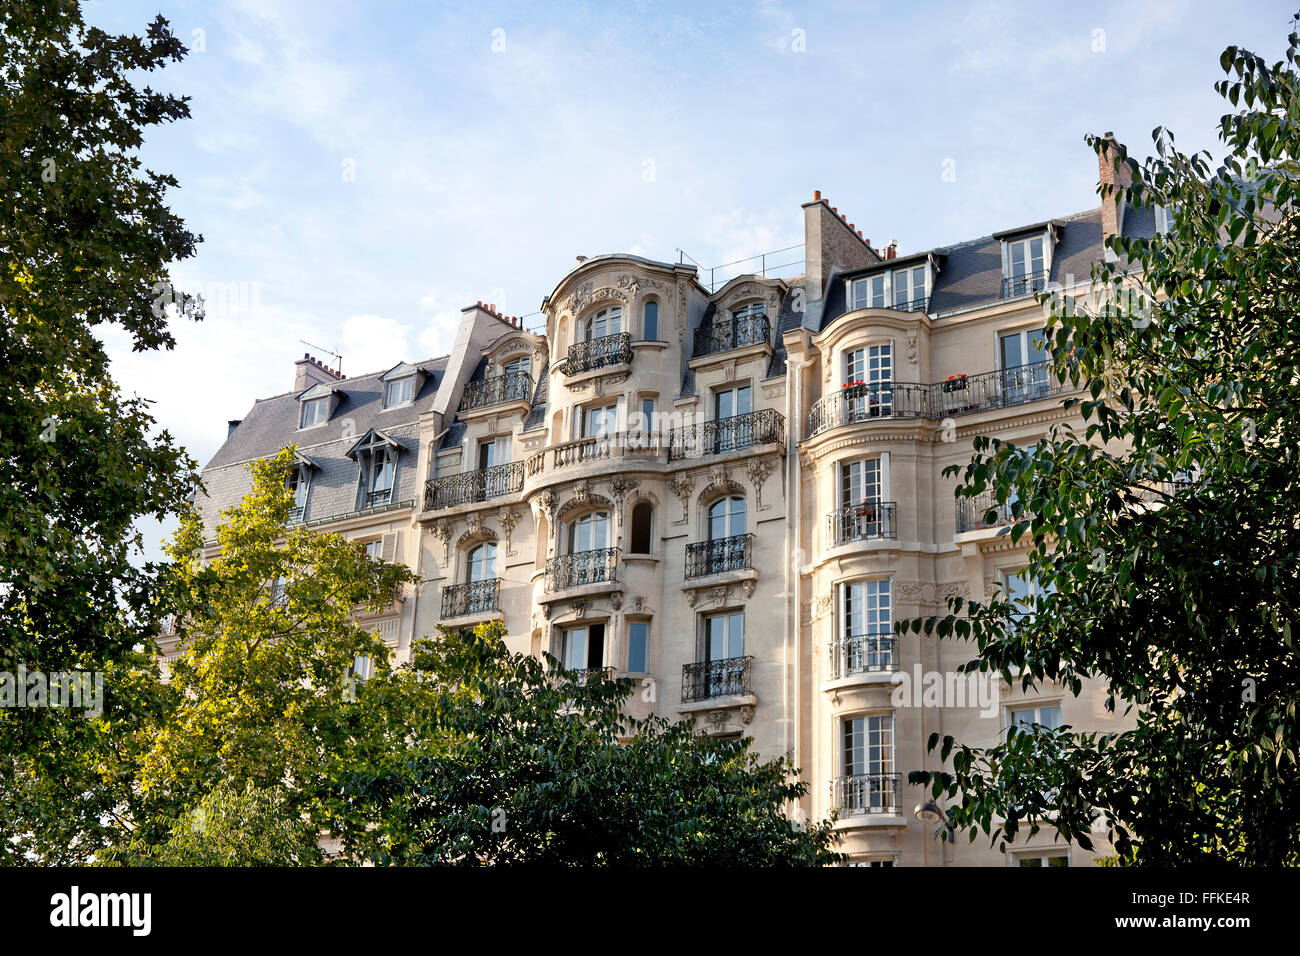 Appartments in Montmartre Paris France - Stock Image